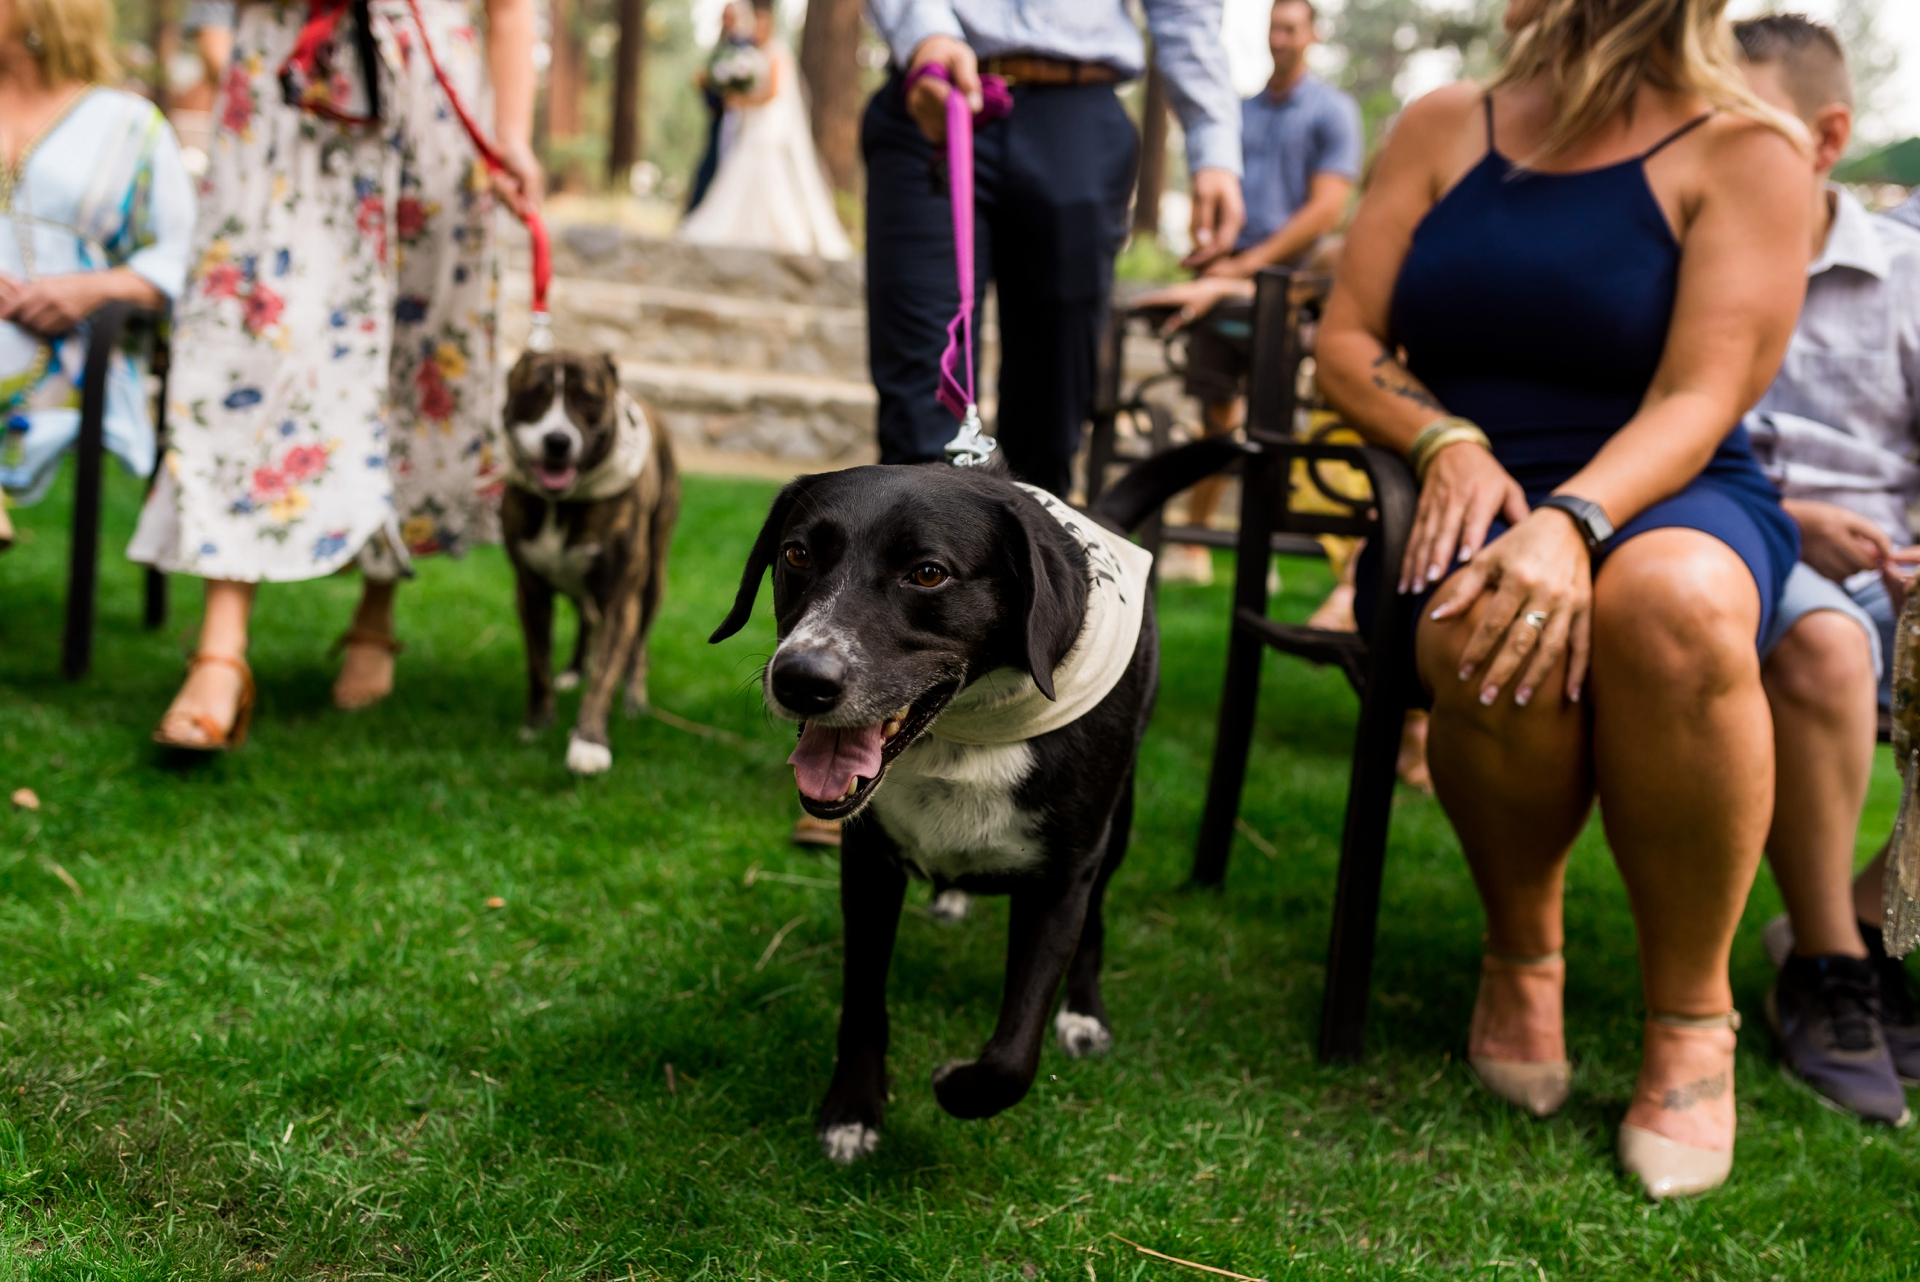 LTCC Demonstration Garden Wedding Image | The wedding party included their four-legged dog friends